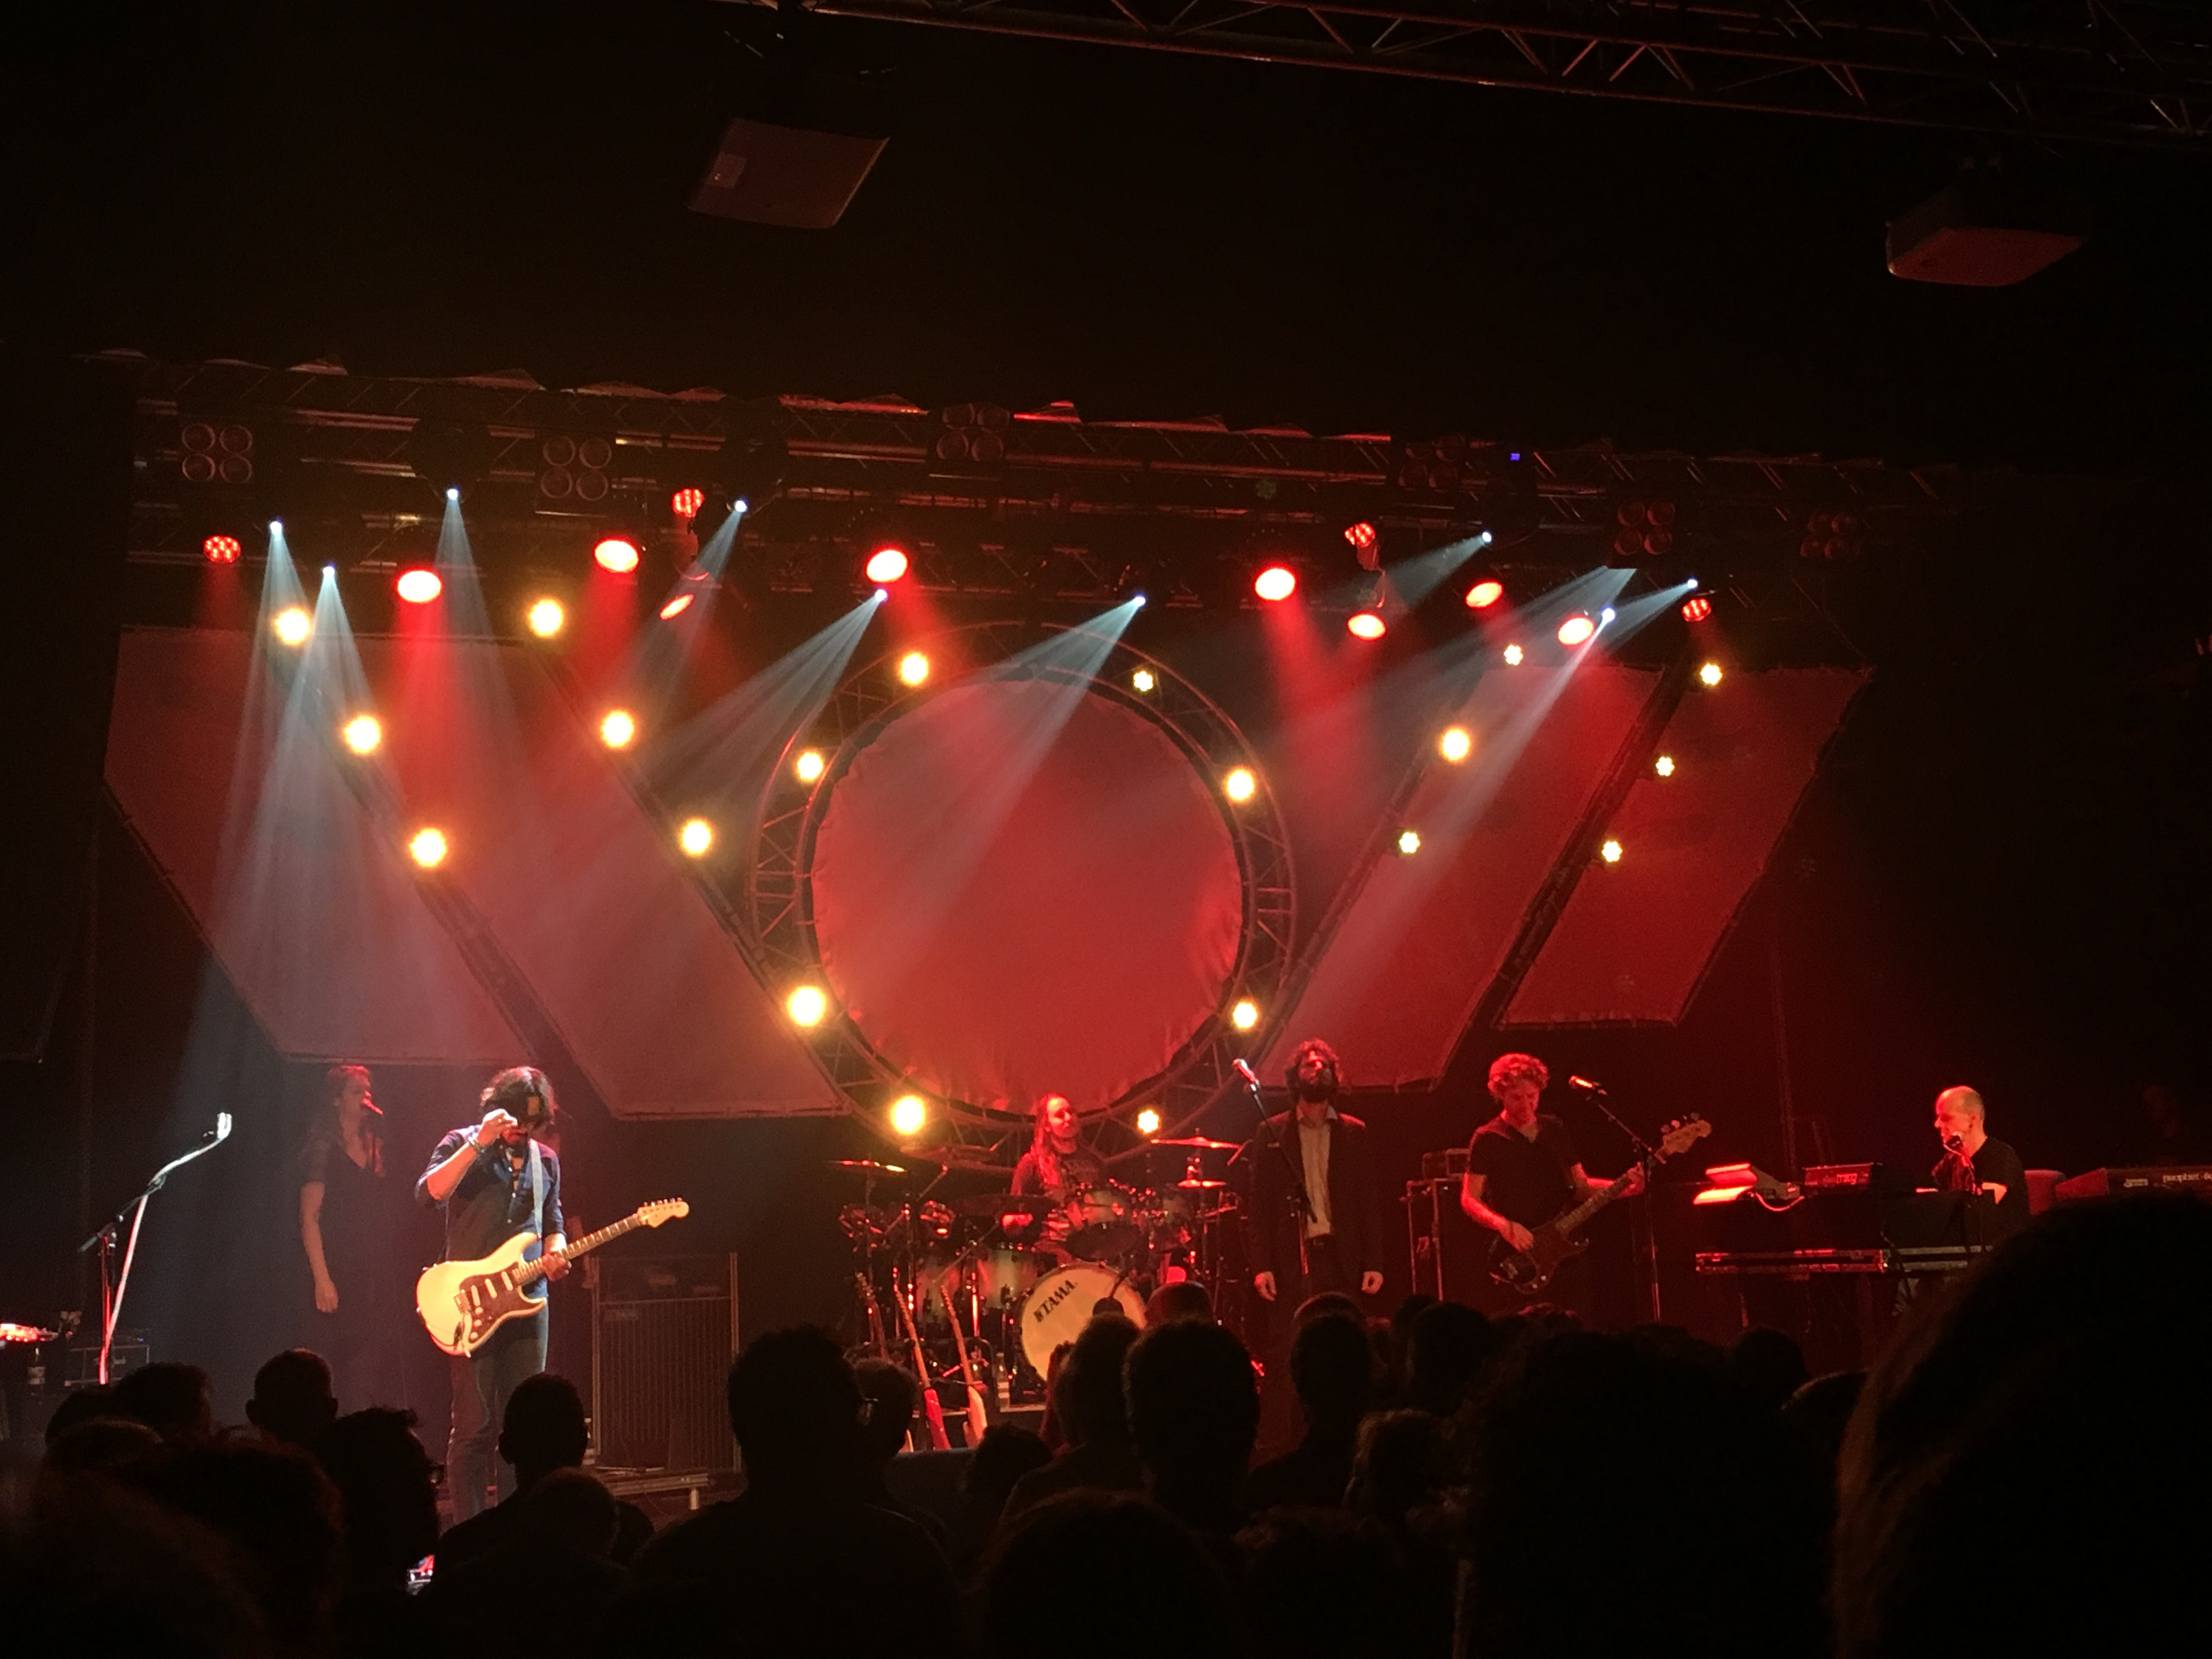 Concertreview: Infloyd's Final Cut